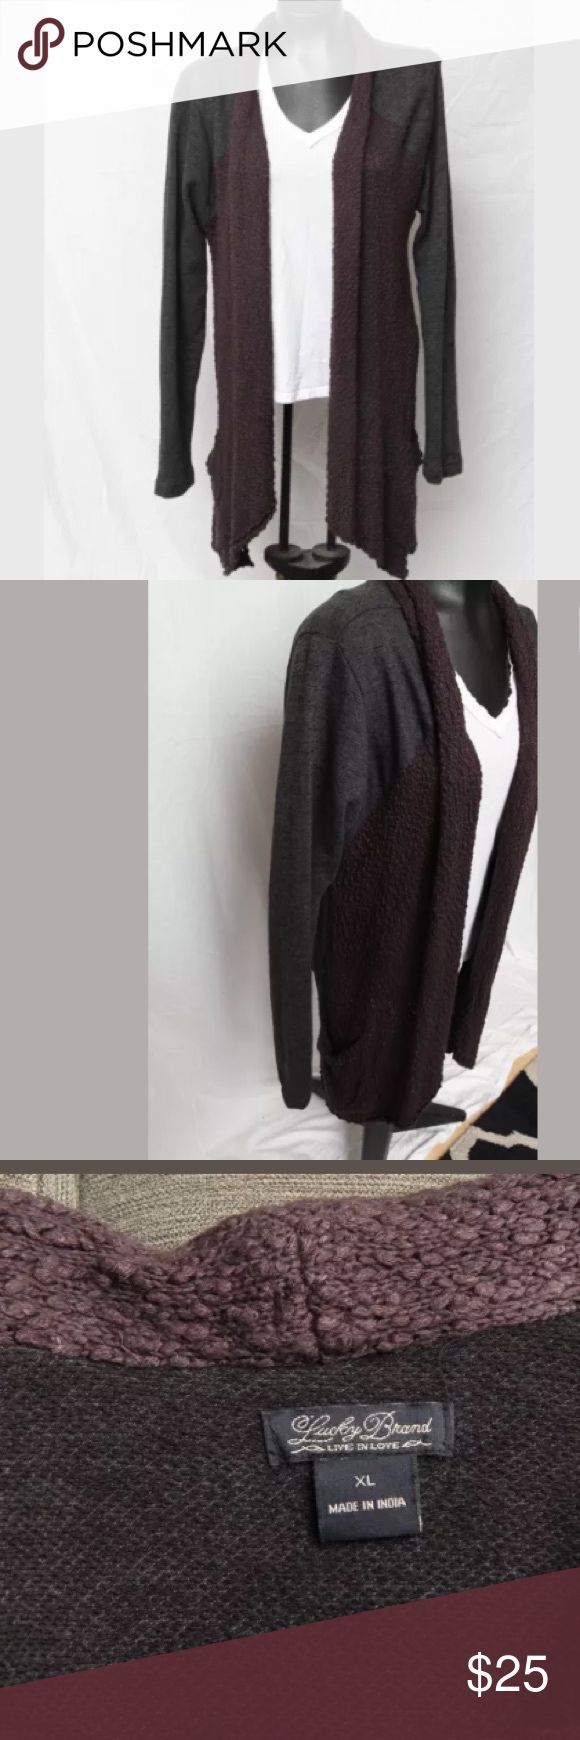 Lucky Brand Gray Draped Waterfall Cardigan XL Cute and Comfy Lucky Brand Denim Cardigan  Woven knit-like cardigan with a soft cotton back Deep charcoal gray color Size XL Lucky Brand Sweaters Cardigans